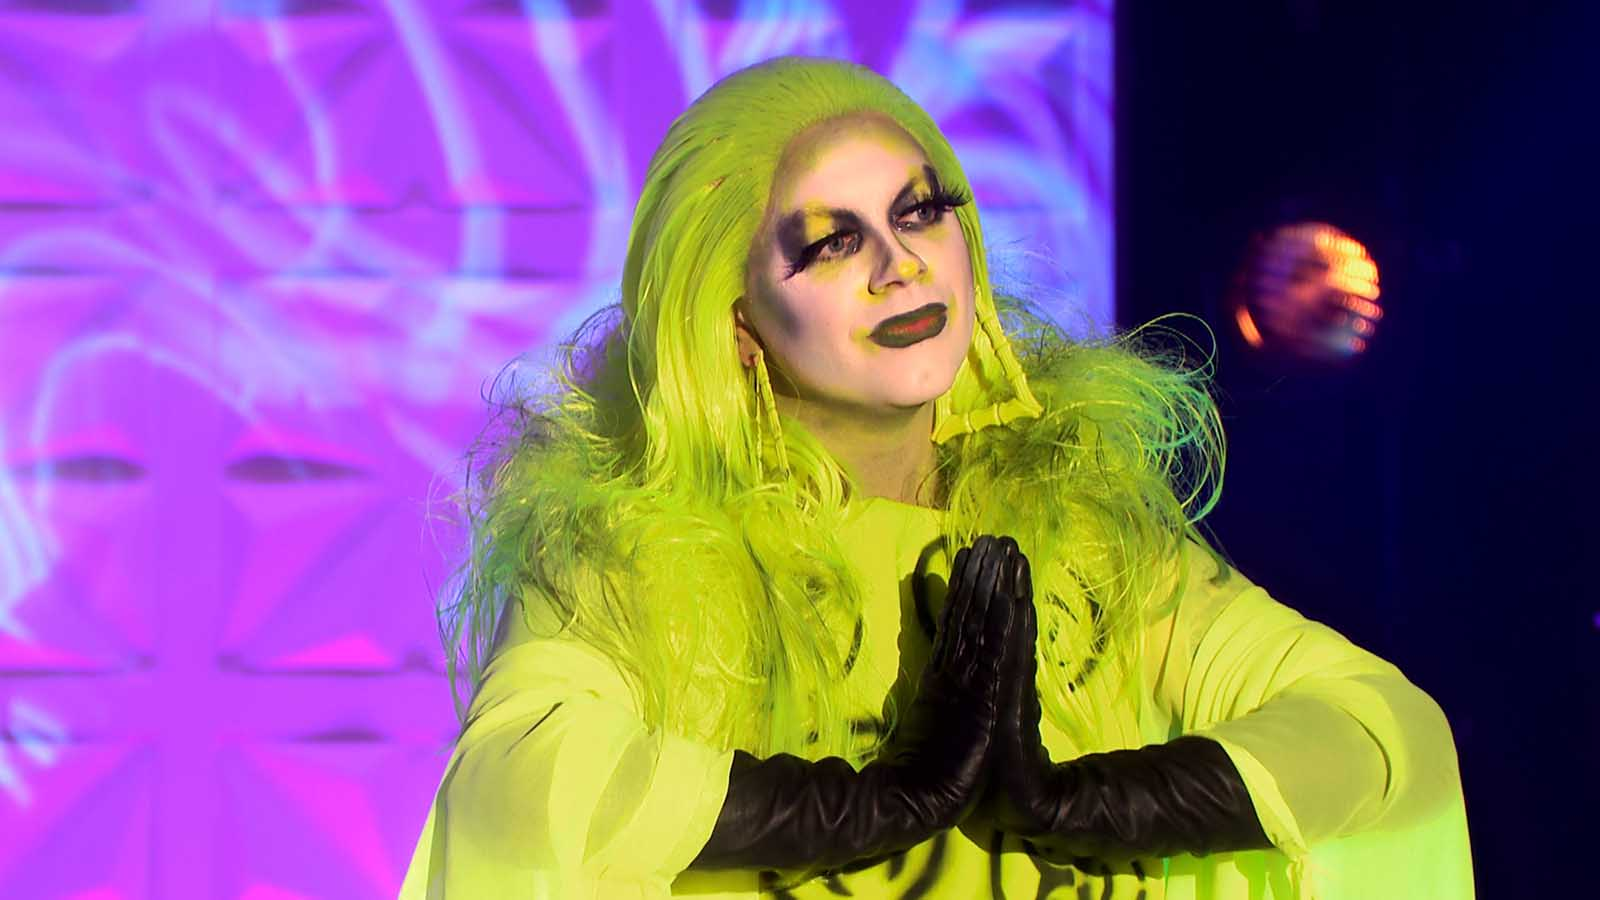 'Drag Race UK' made hertory last night with its elimination. Hear from the queen themselves on their shocking elimination.